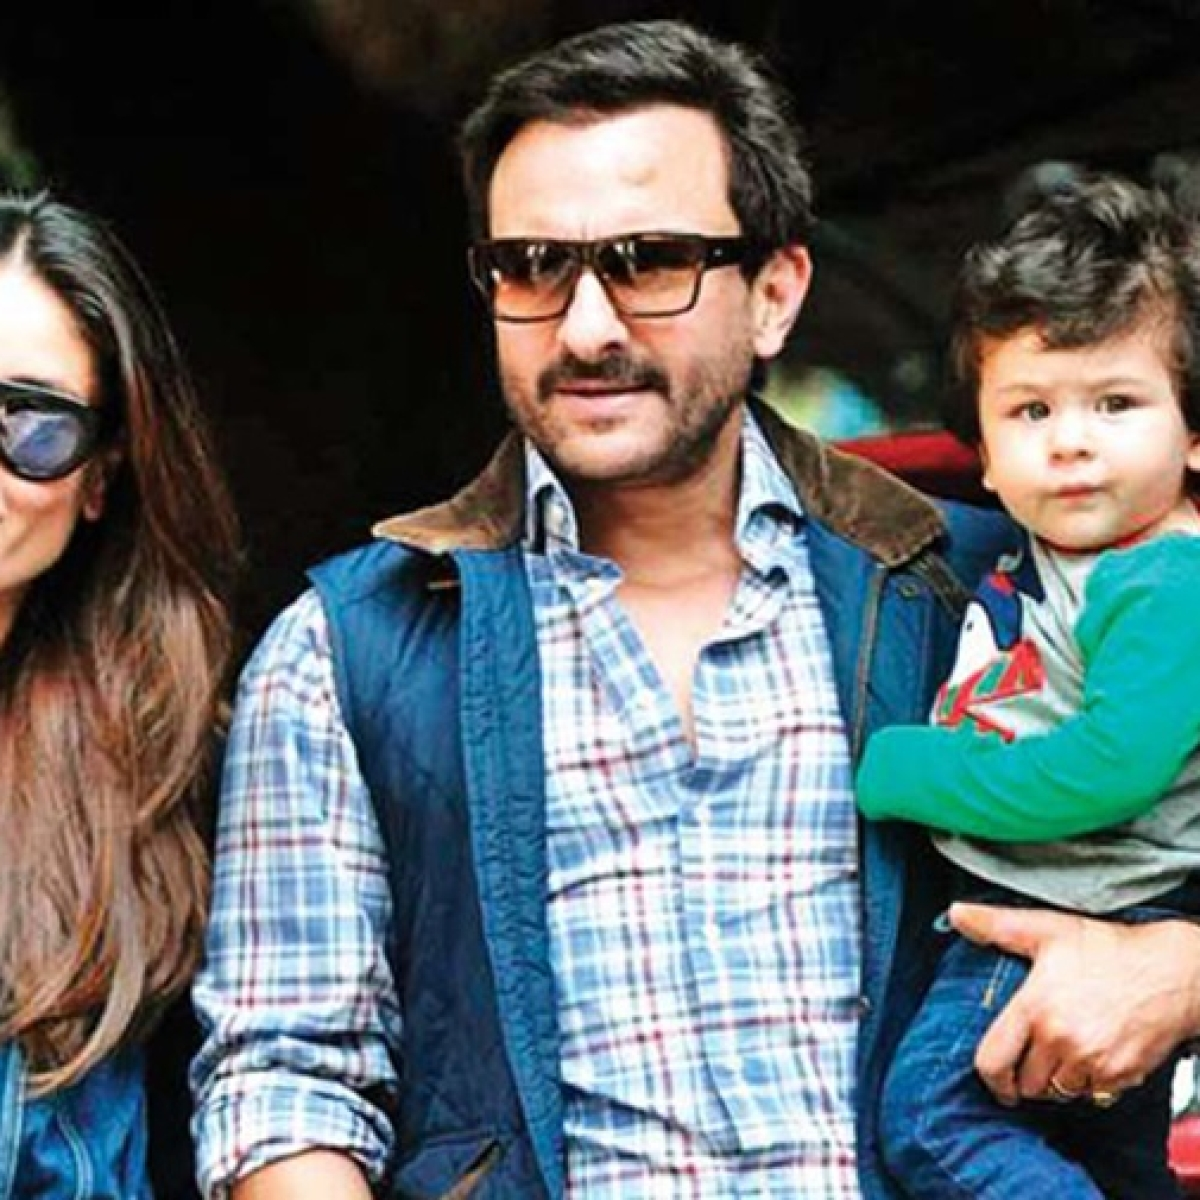 Aurangzeb, Babar trend on Twitter after Kareena Kapoor, Saif Ali Khan welcome Taimur's younger brother